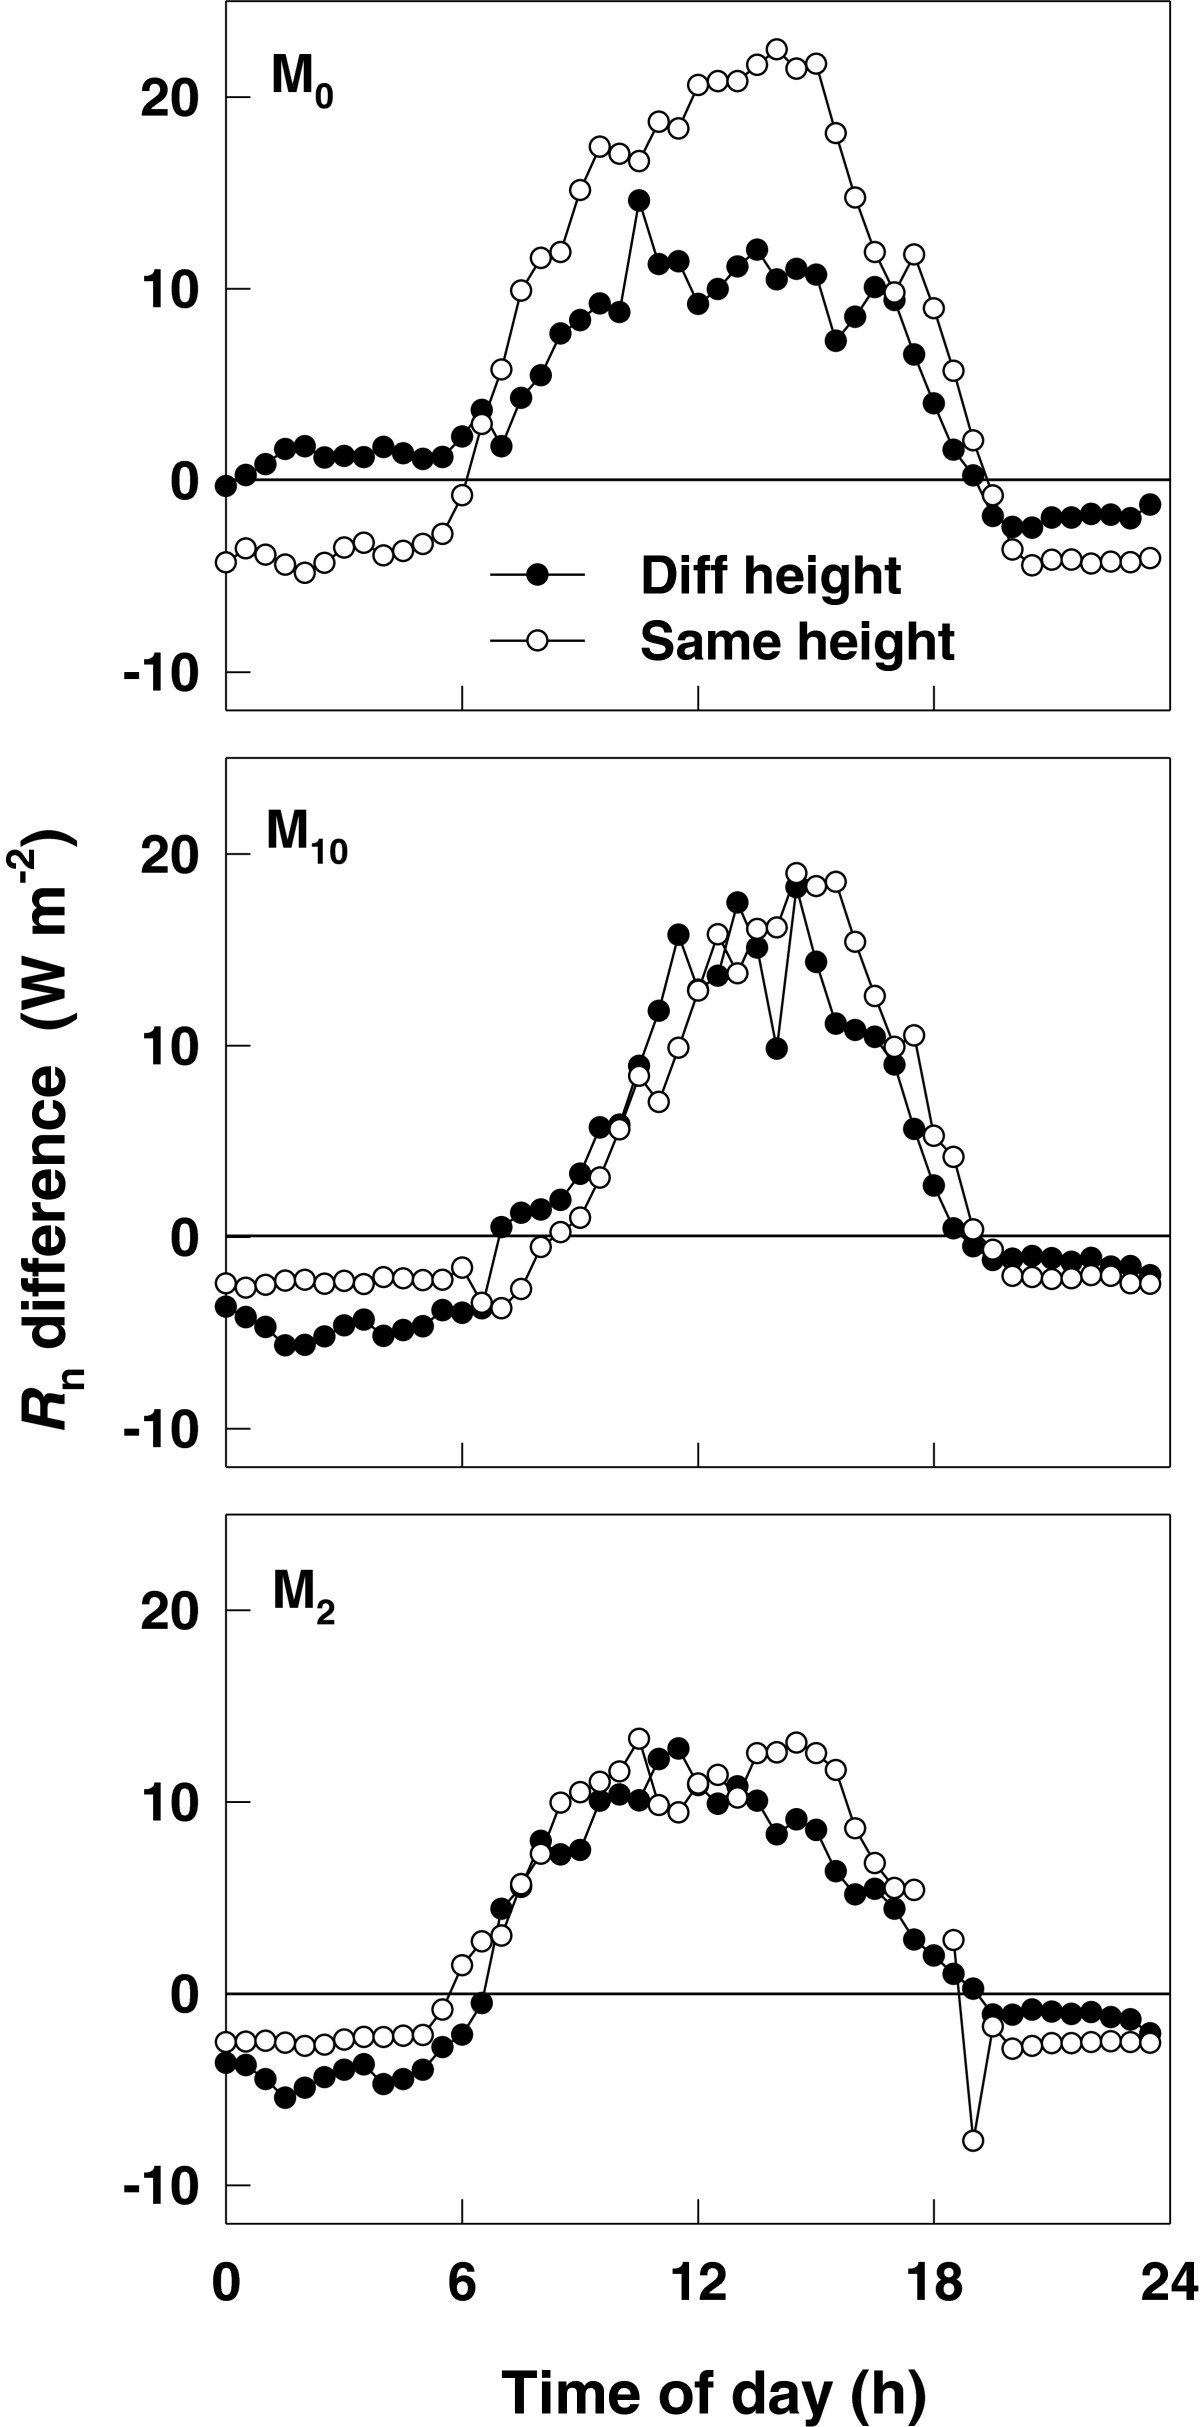 https://static-content.springer.com/image/art%3A10.1186%2F2192-1709-3-7/MediaObjects/13717_2014_Article_52_Fig6_HTML.jpg